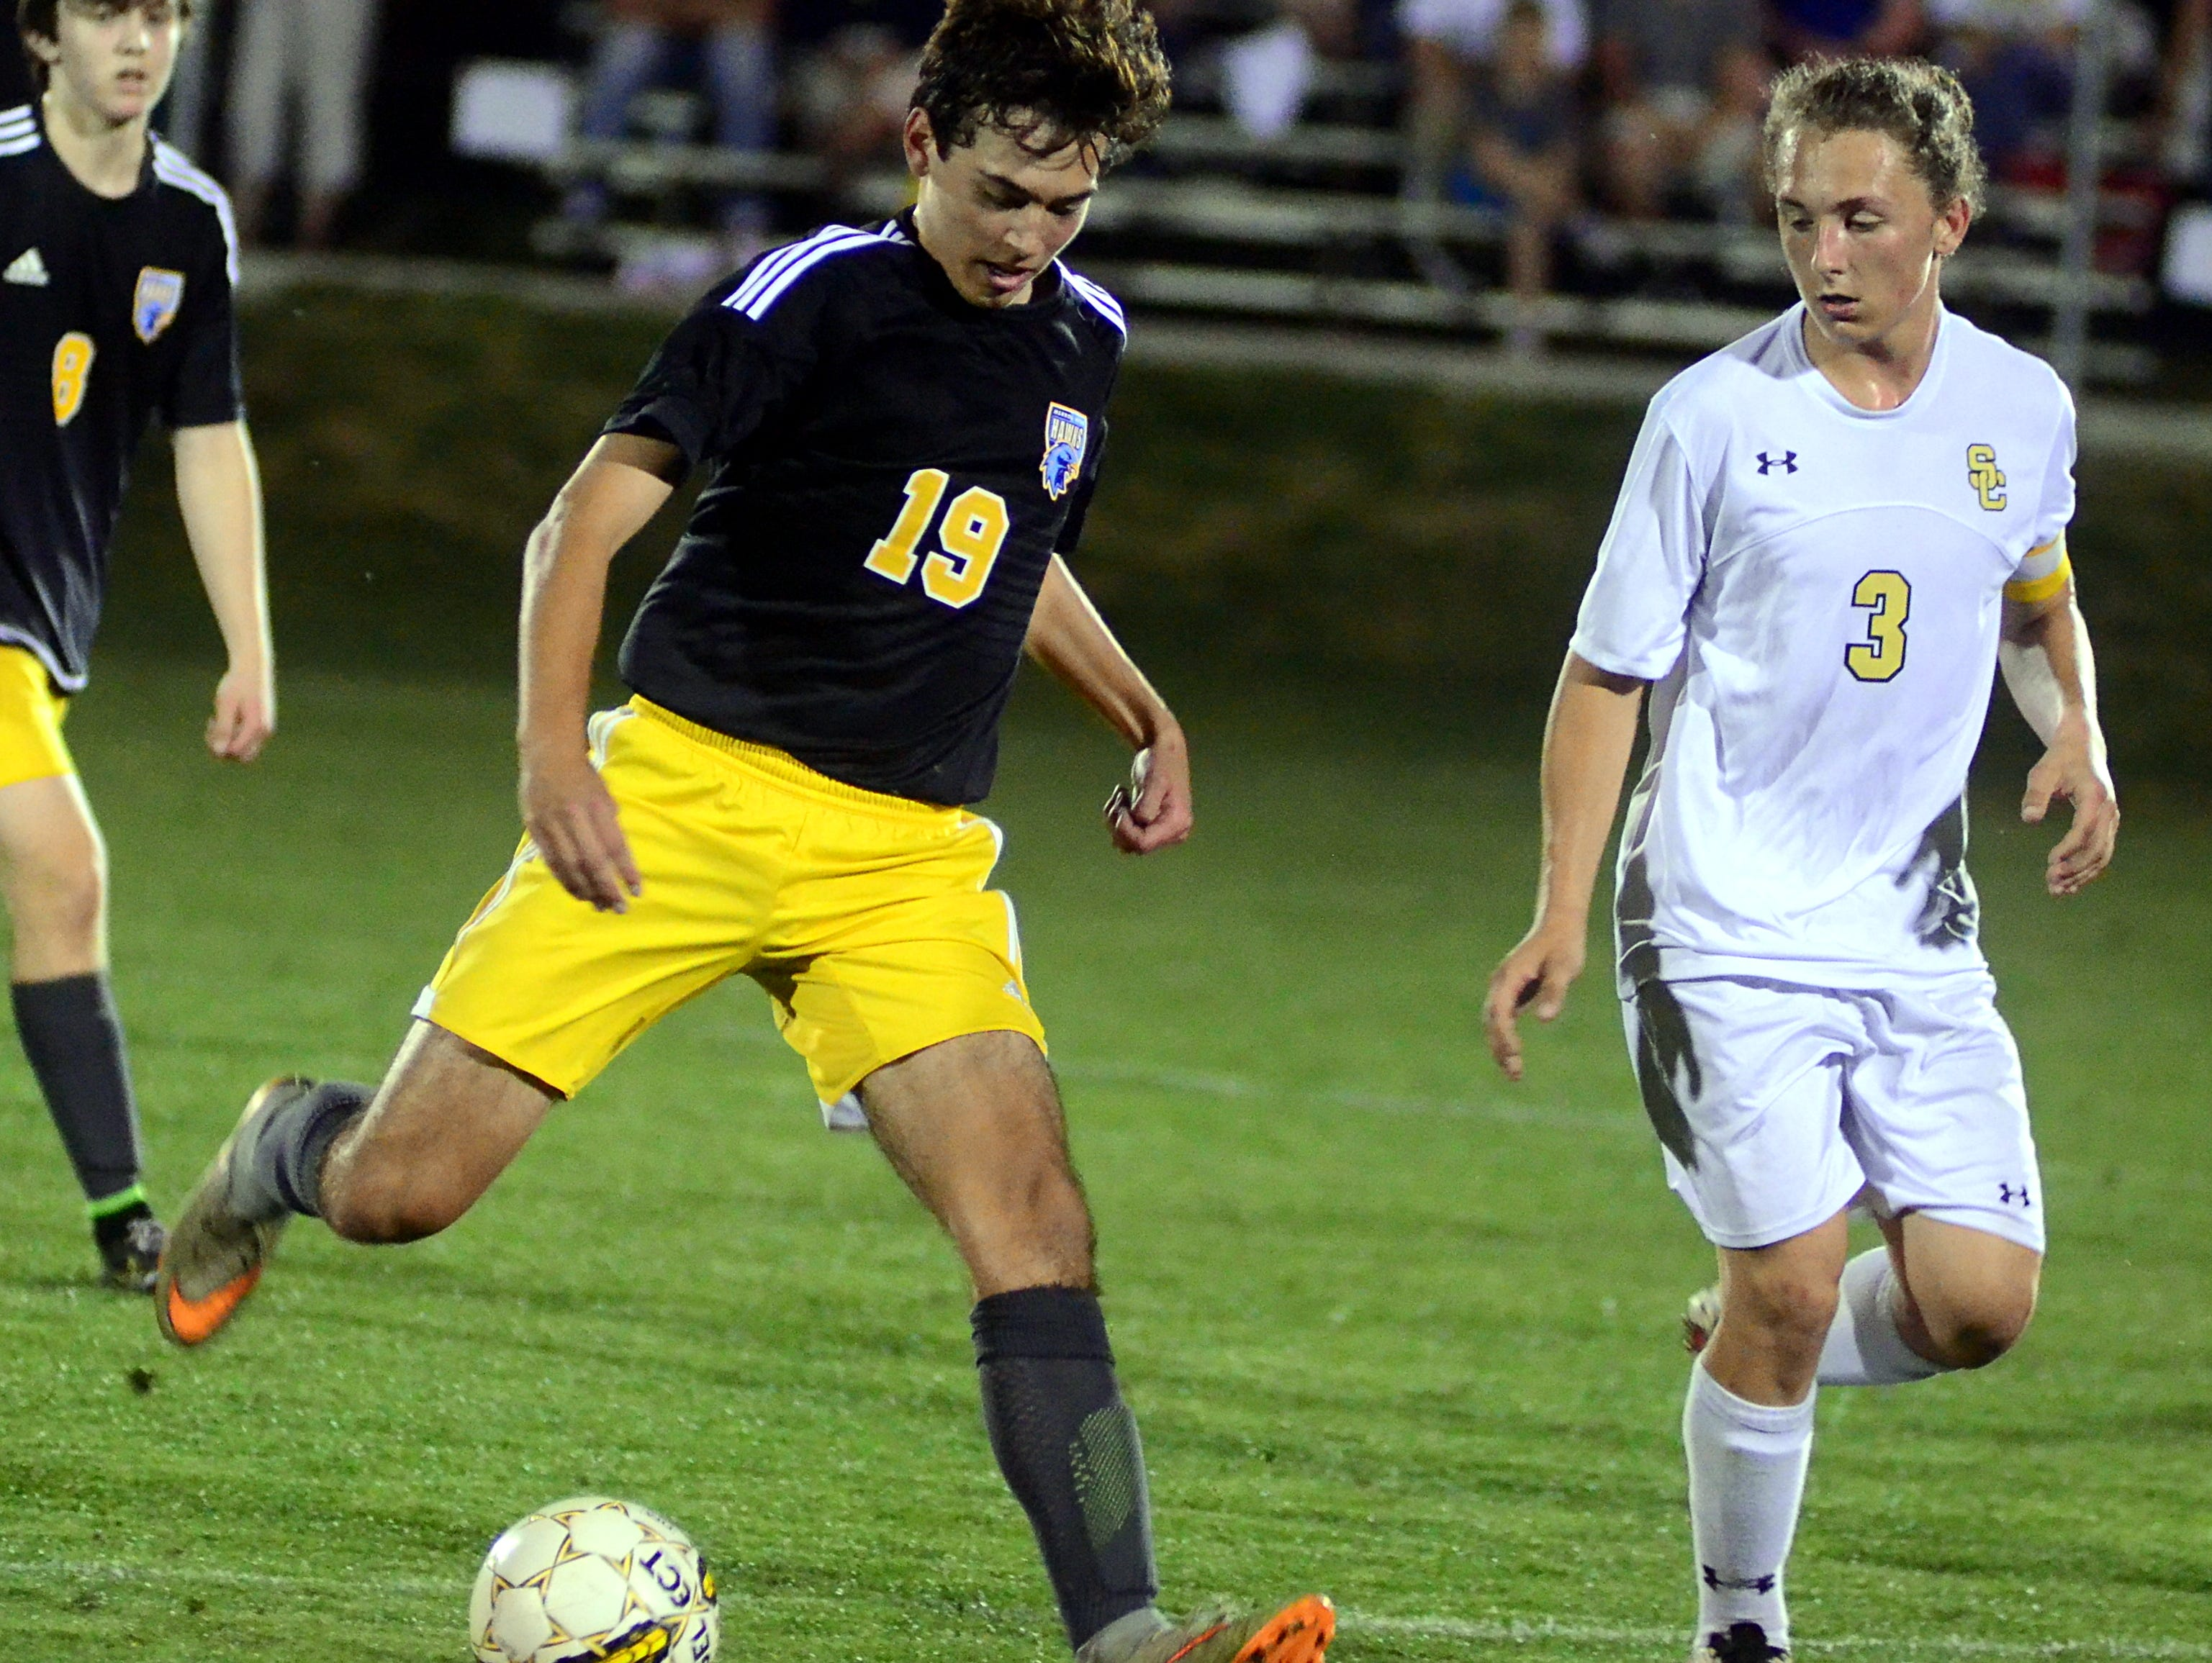 Merrol Hyde Magnet sophomore Daniel See gains possession under pressure from Smith County senior Ethan Babcock during second-half action.